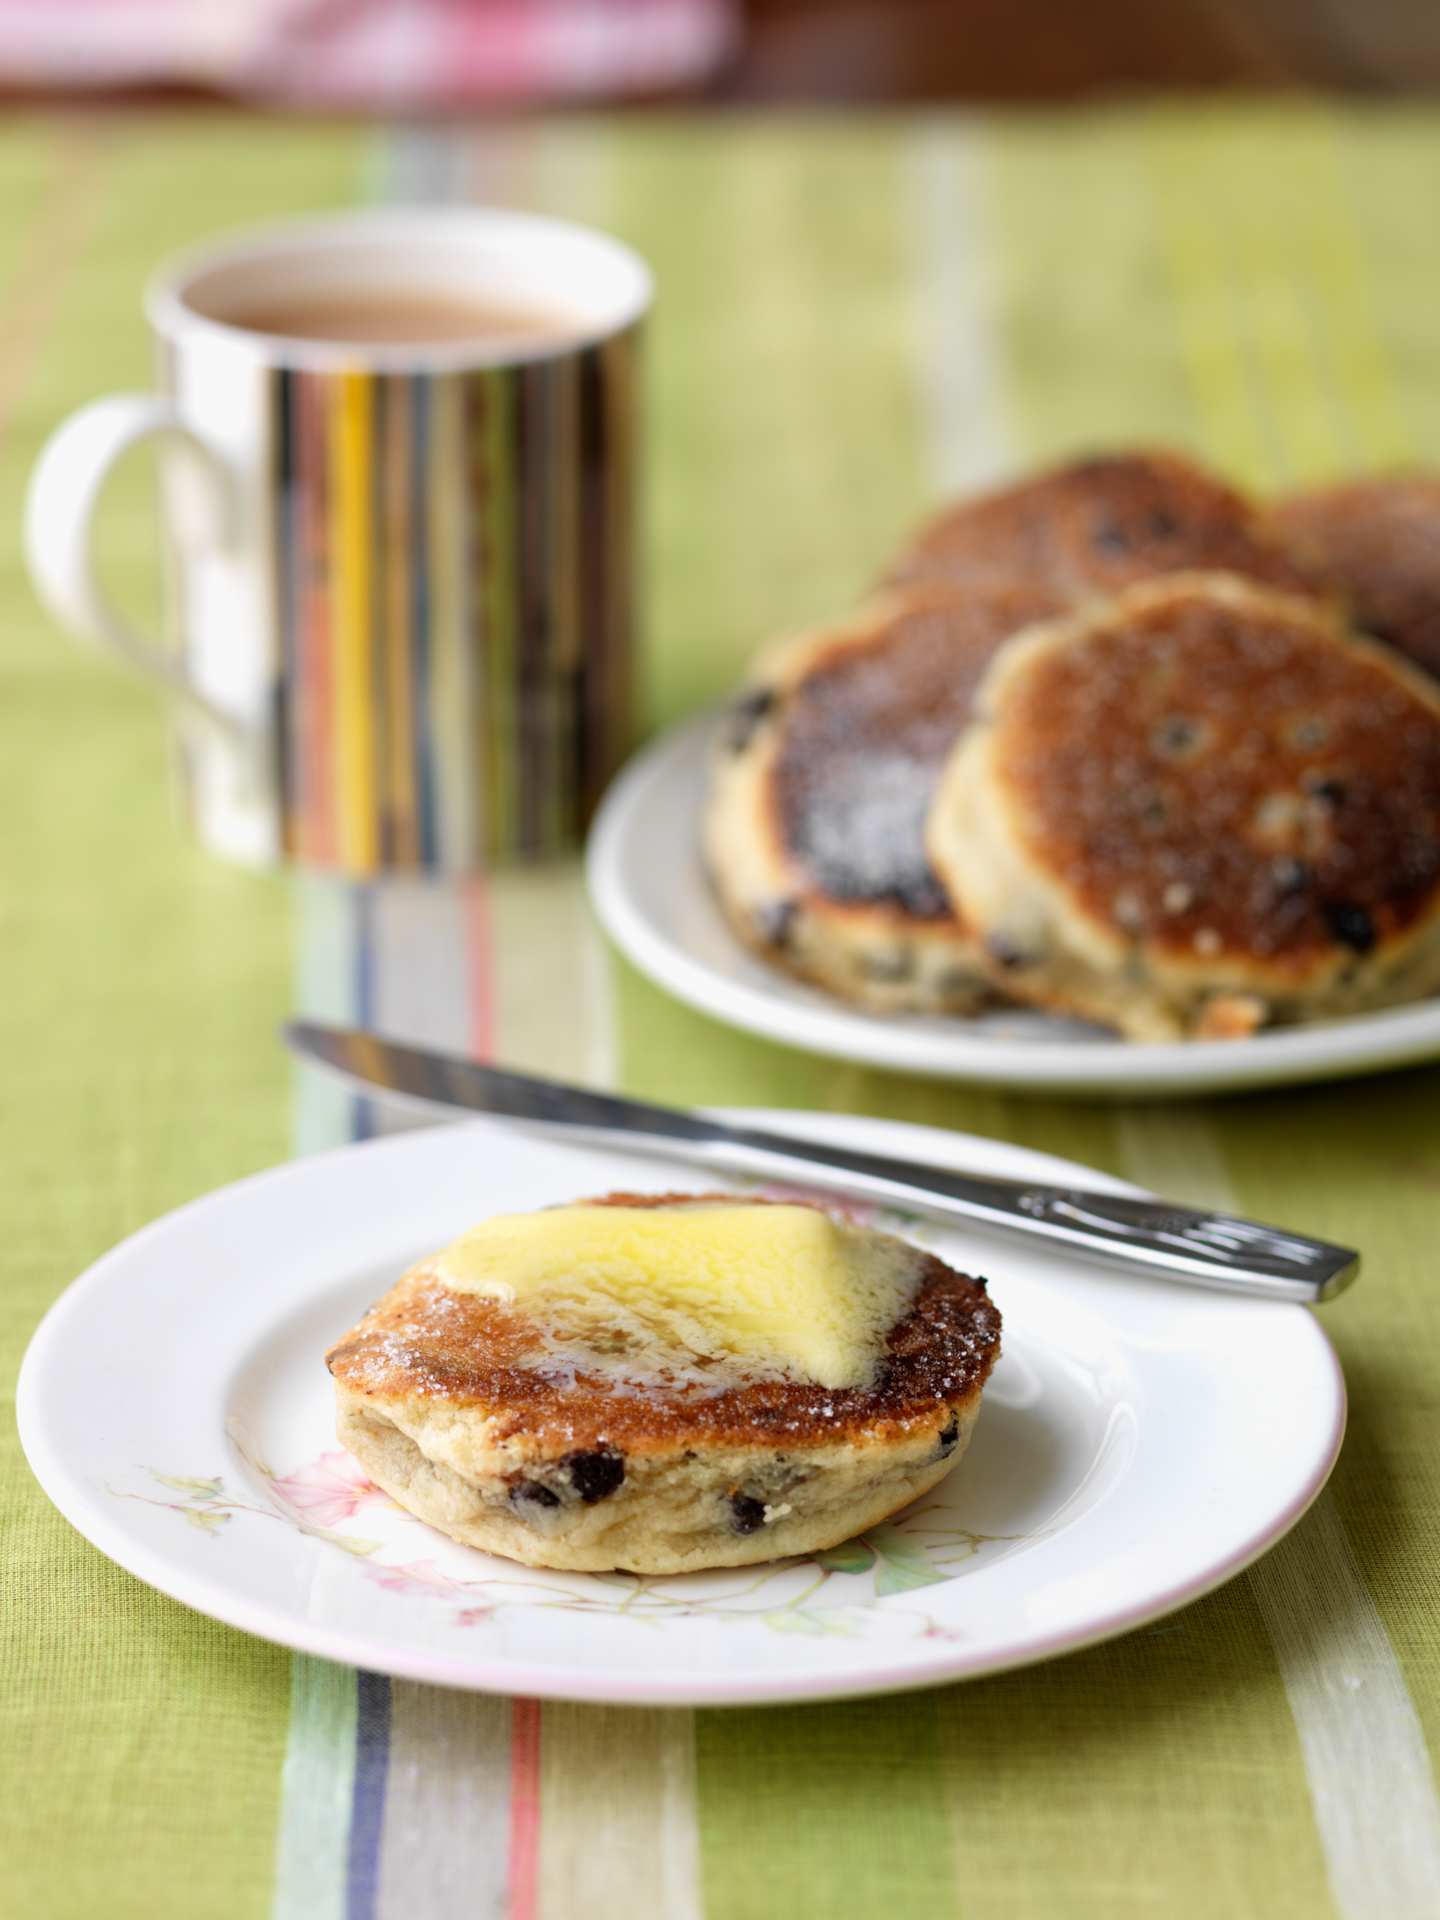 Sam Squire BT Welsh griddle cakes.jpg